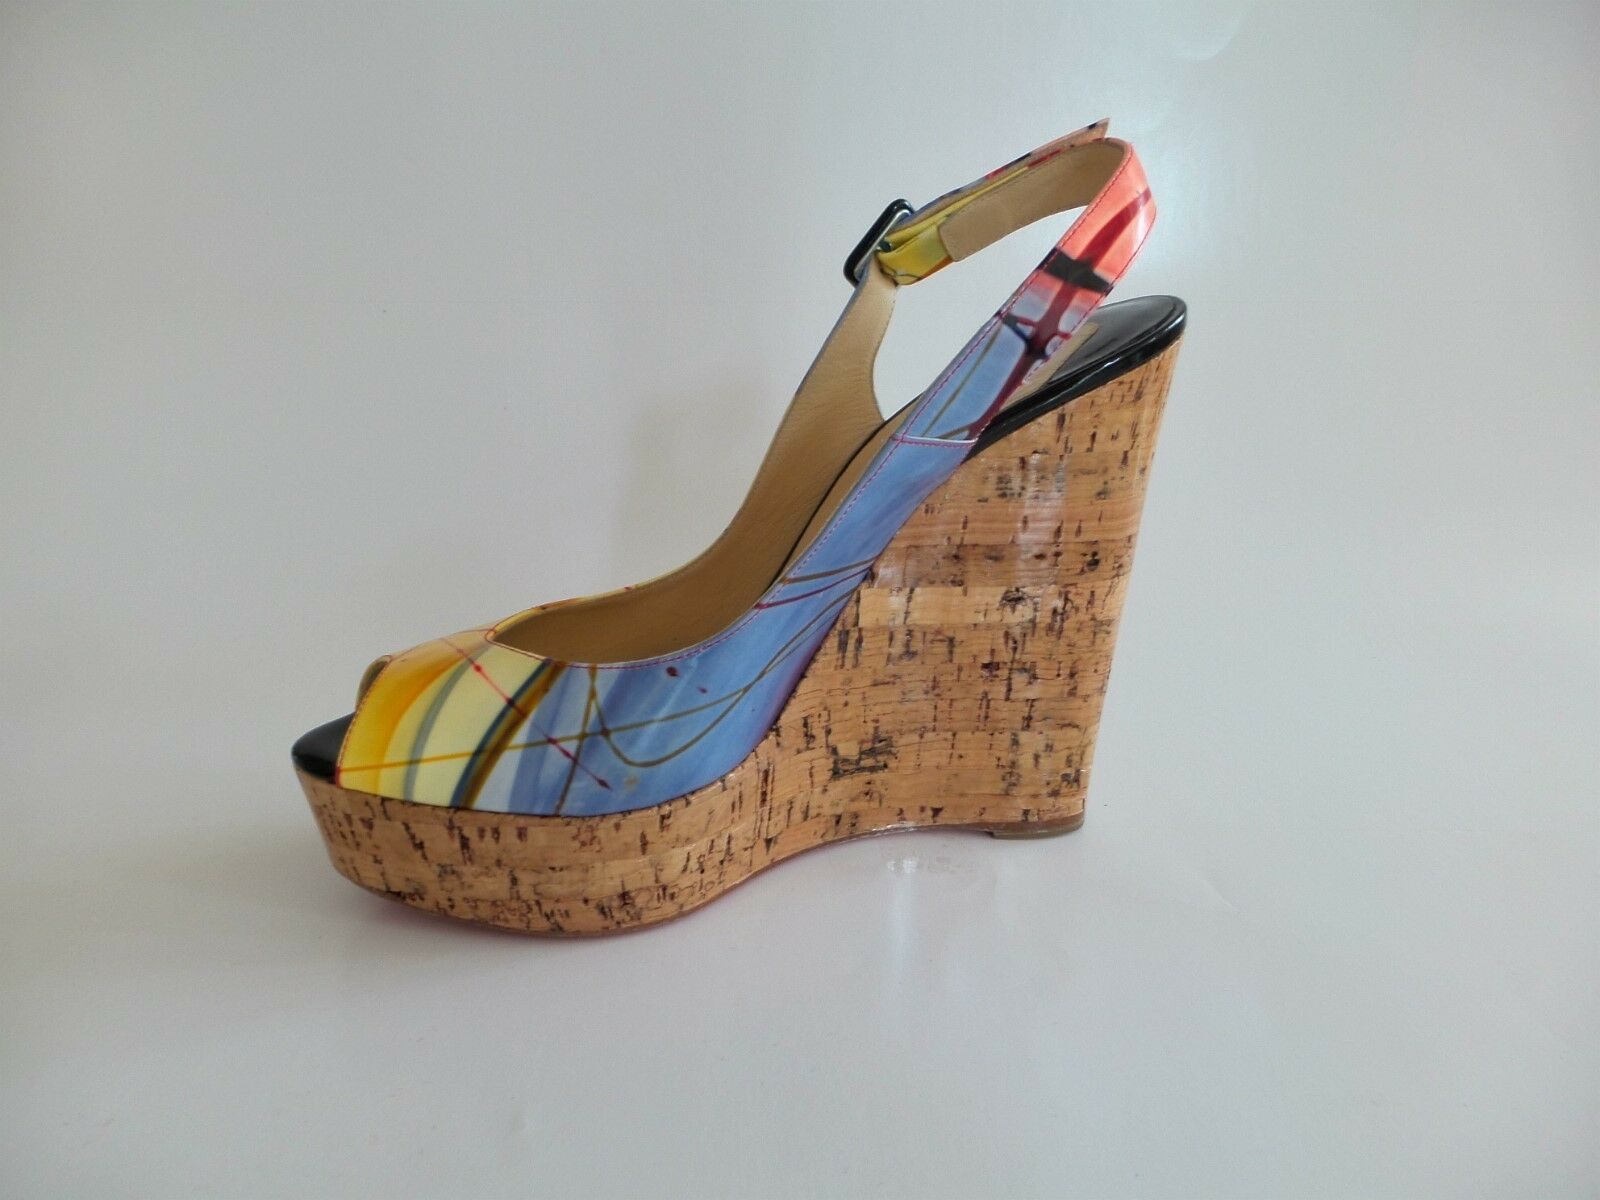 CHRISTIAN CHRISTIAN CHRISTIAN LOUBOUTIN Multi-Couleur Patent Leather Wedge Heels sz. 40 0d9b03